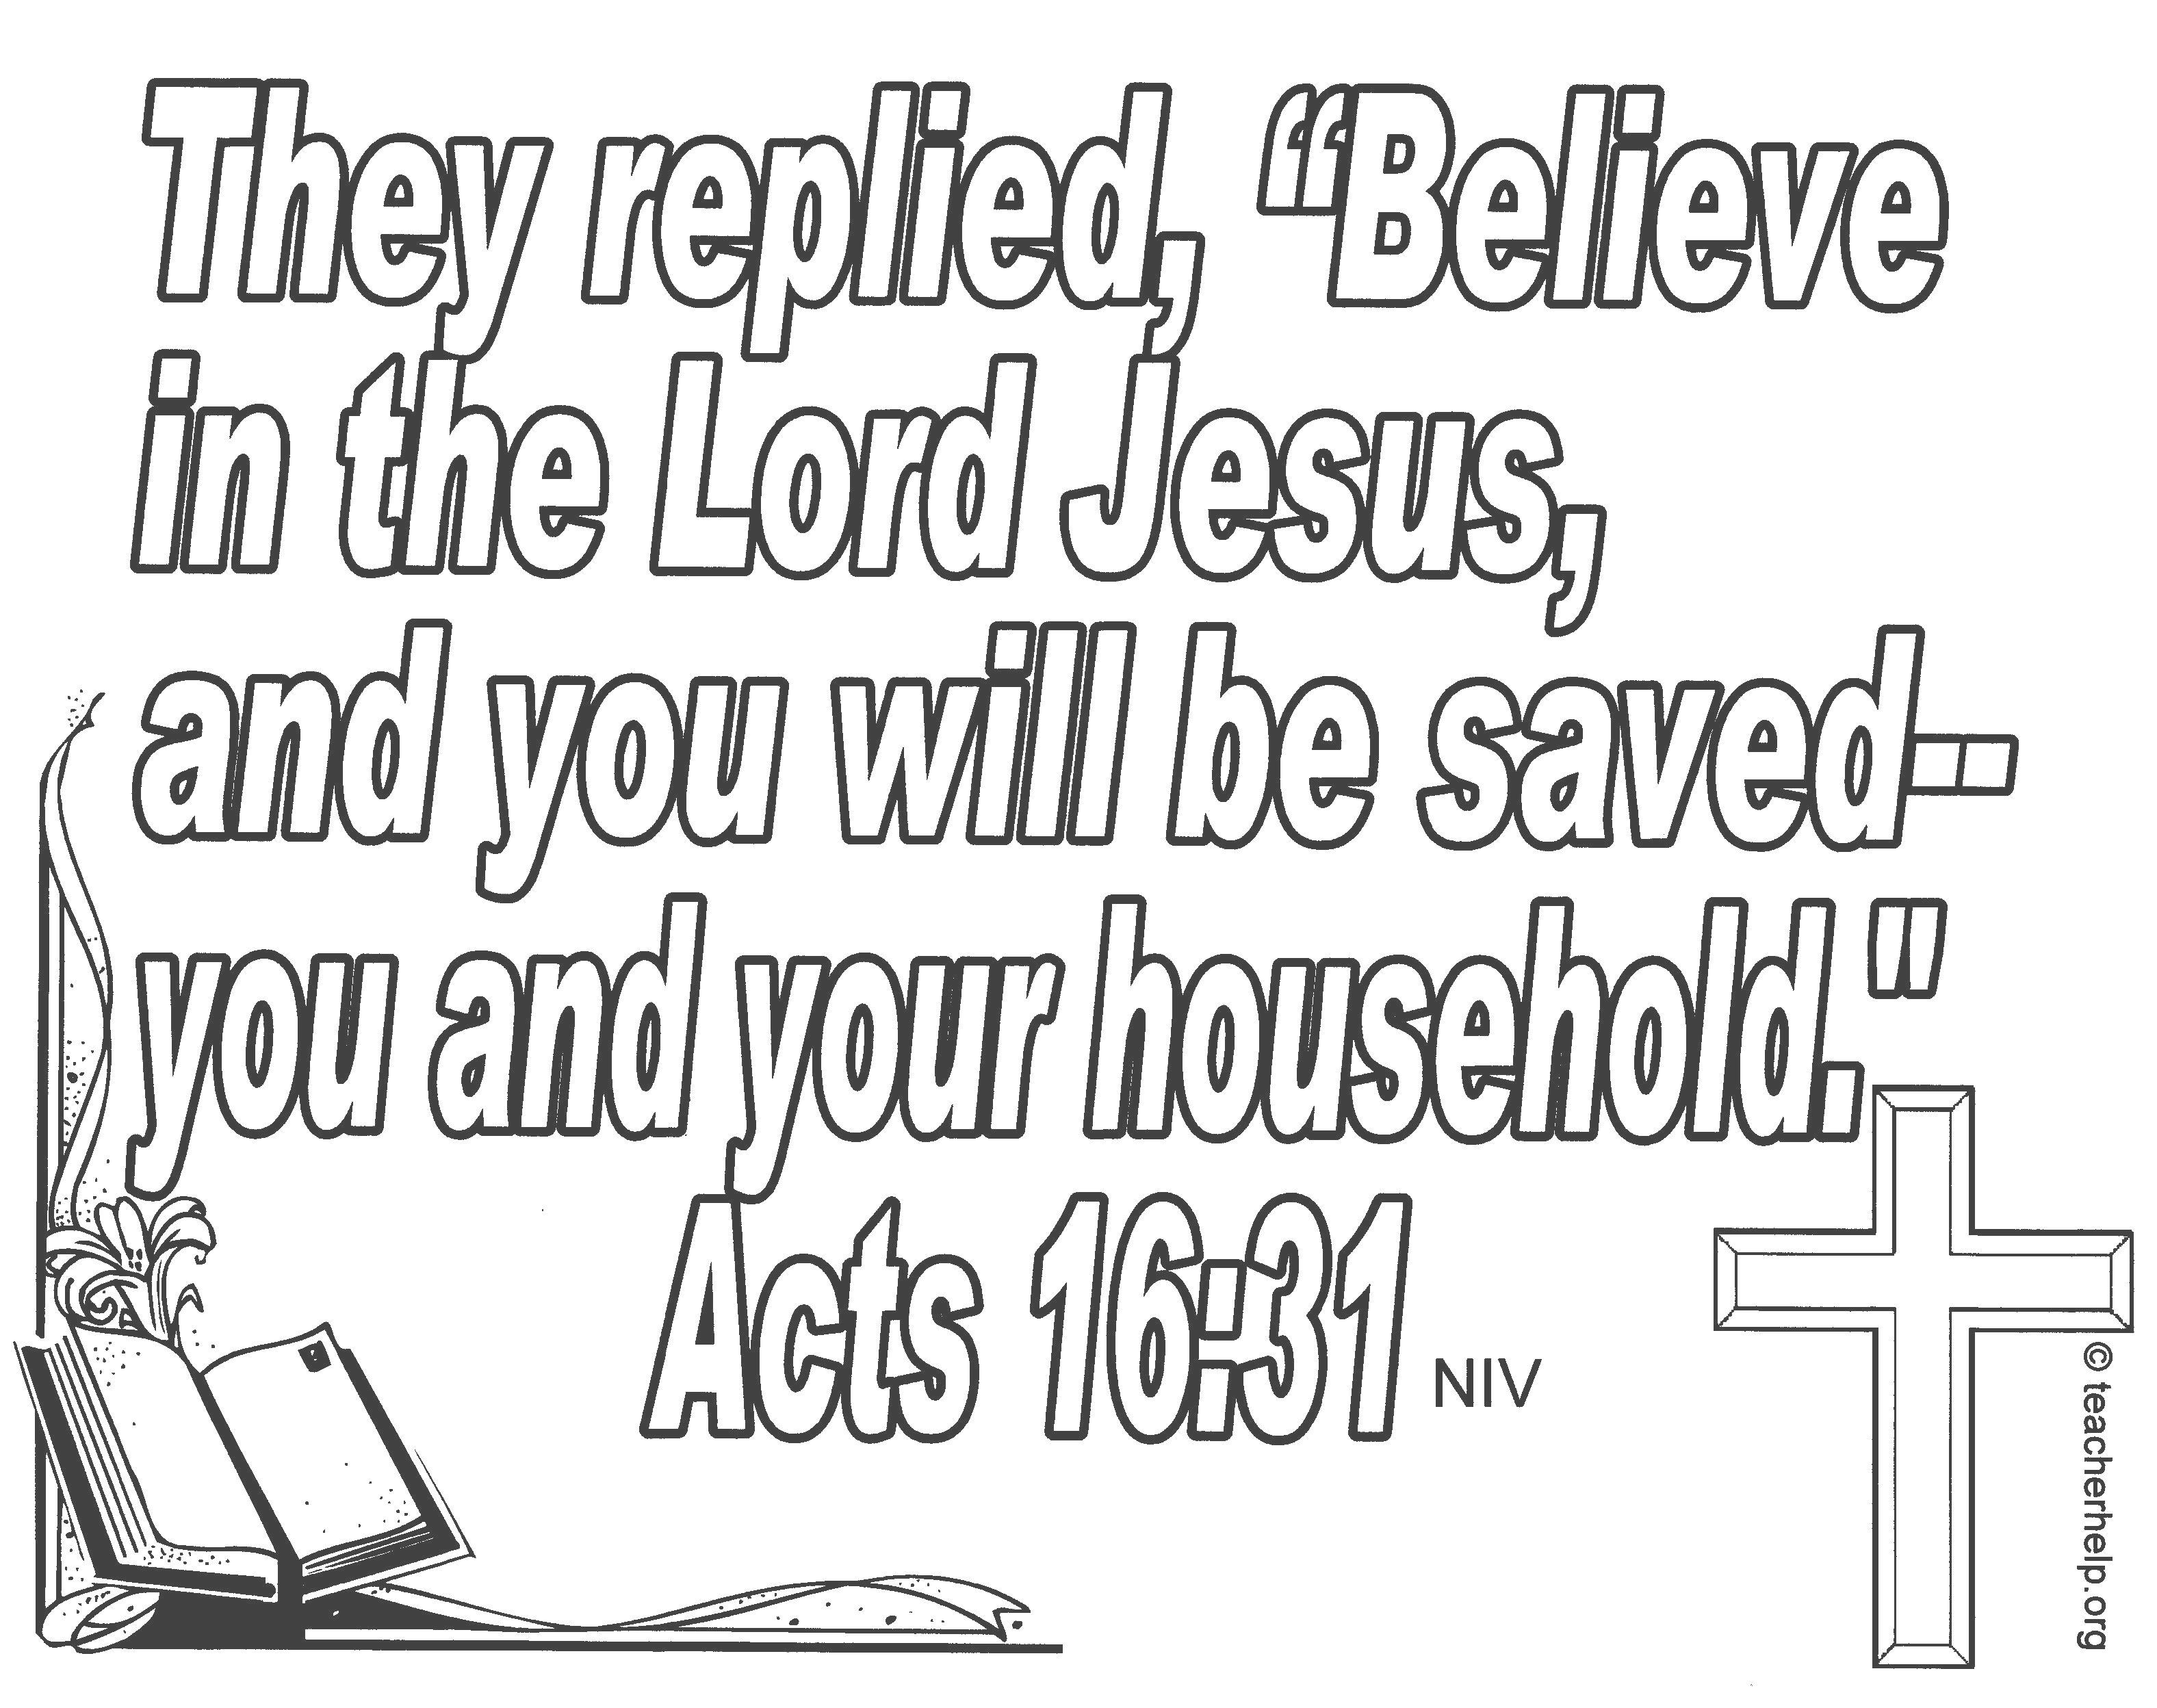 This verse can be printed in NIV or KJV of the Bible